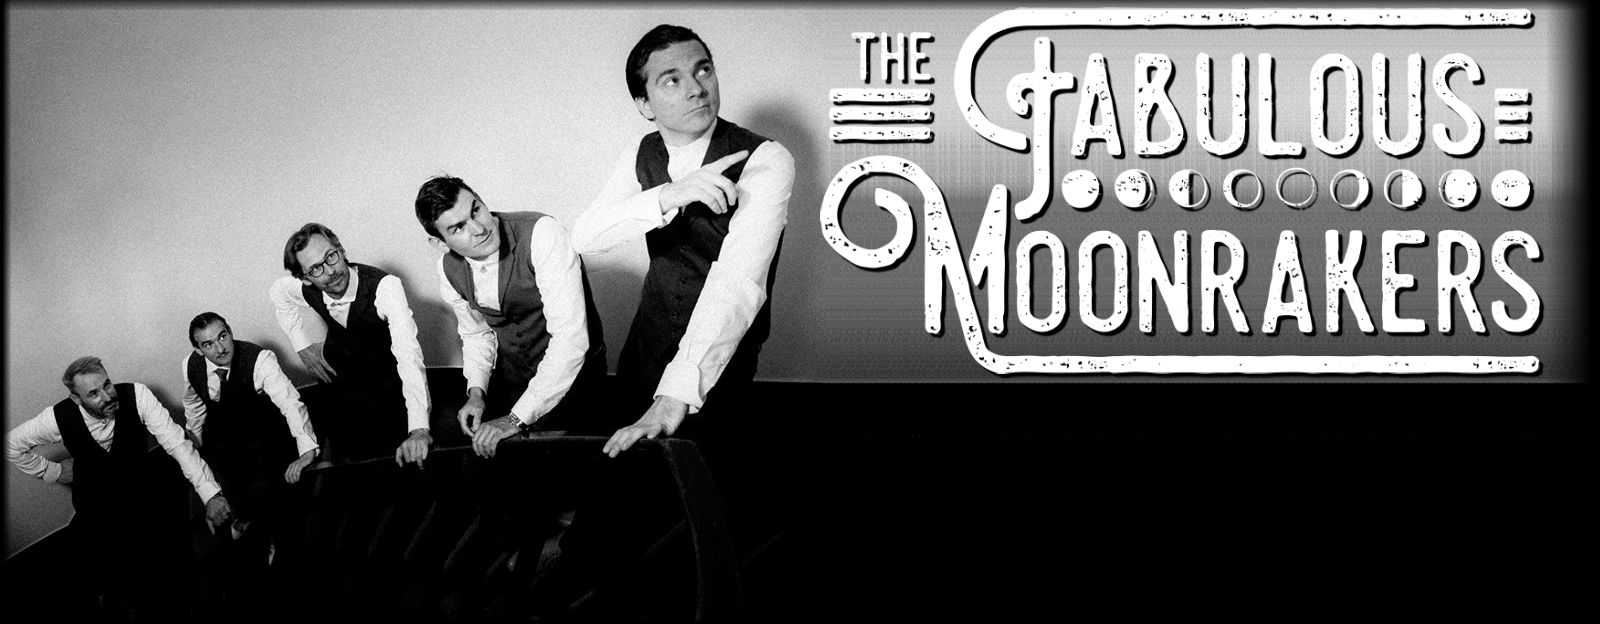 The Fabulous Moonrakers